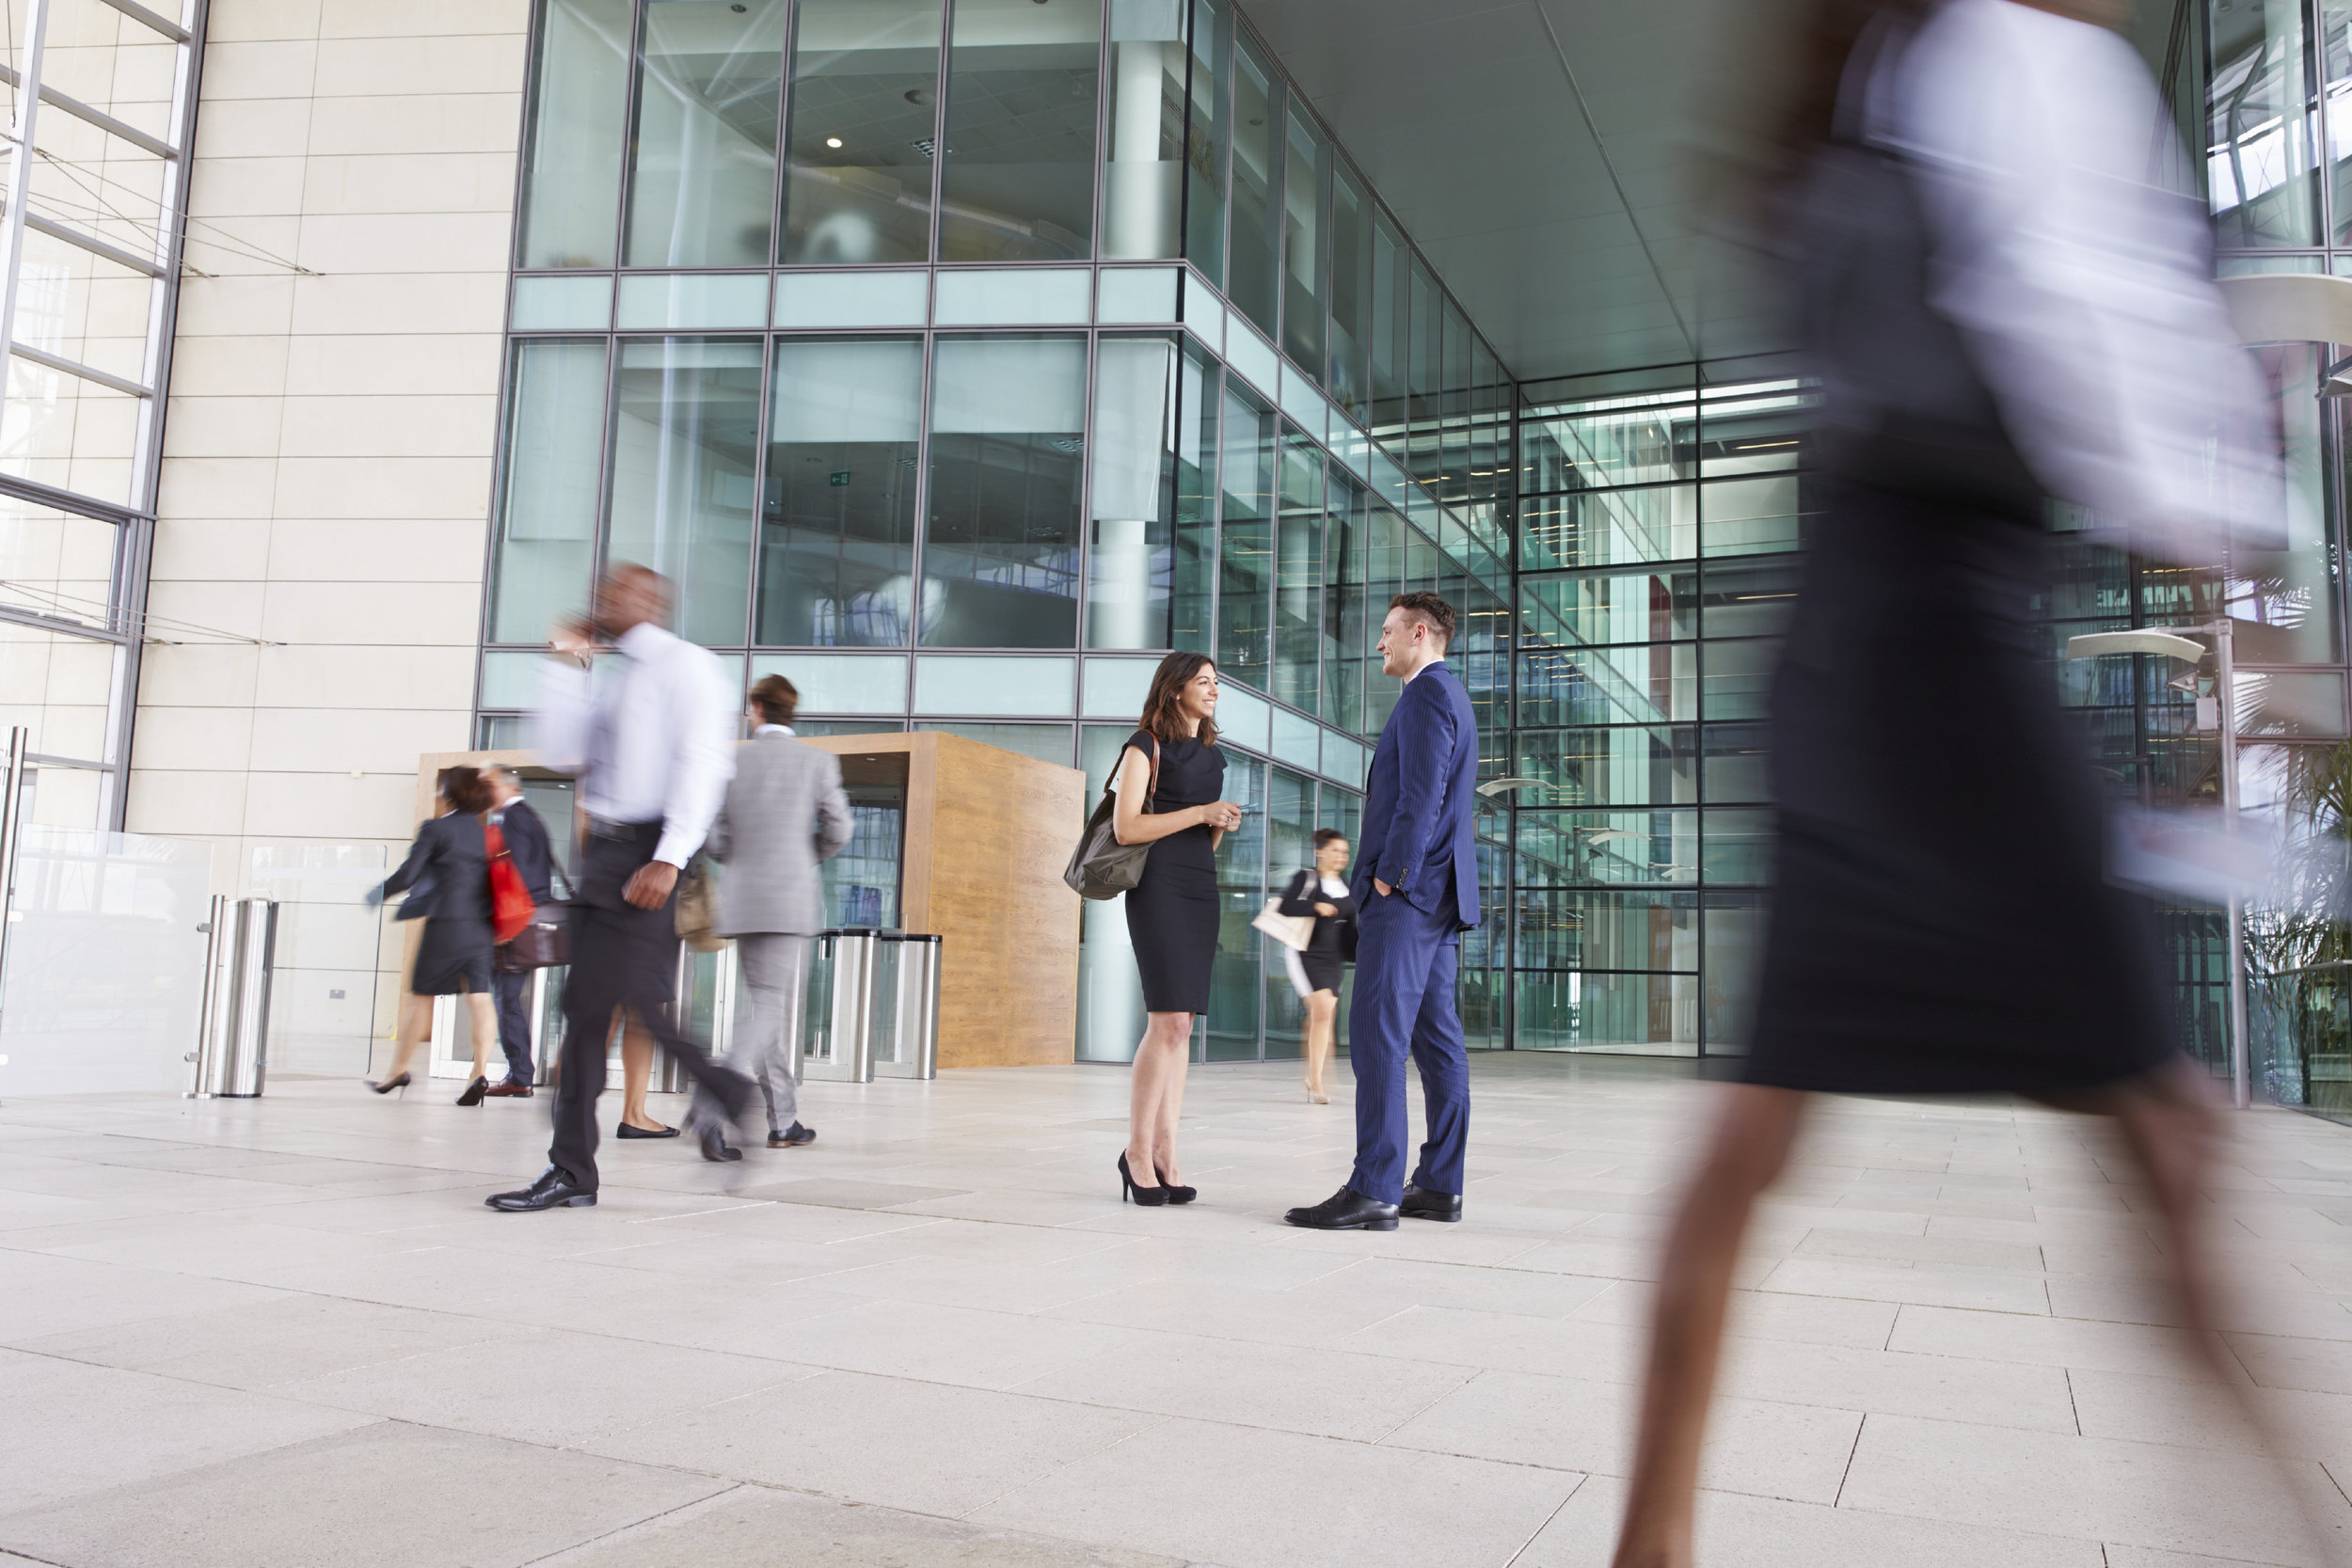 People-passing-through-the-busy-foyer-of-a-business-building-000073538383_Full.jpg